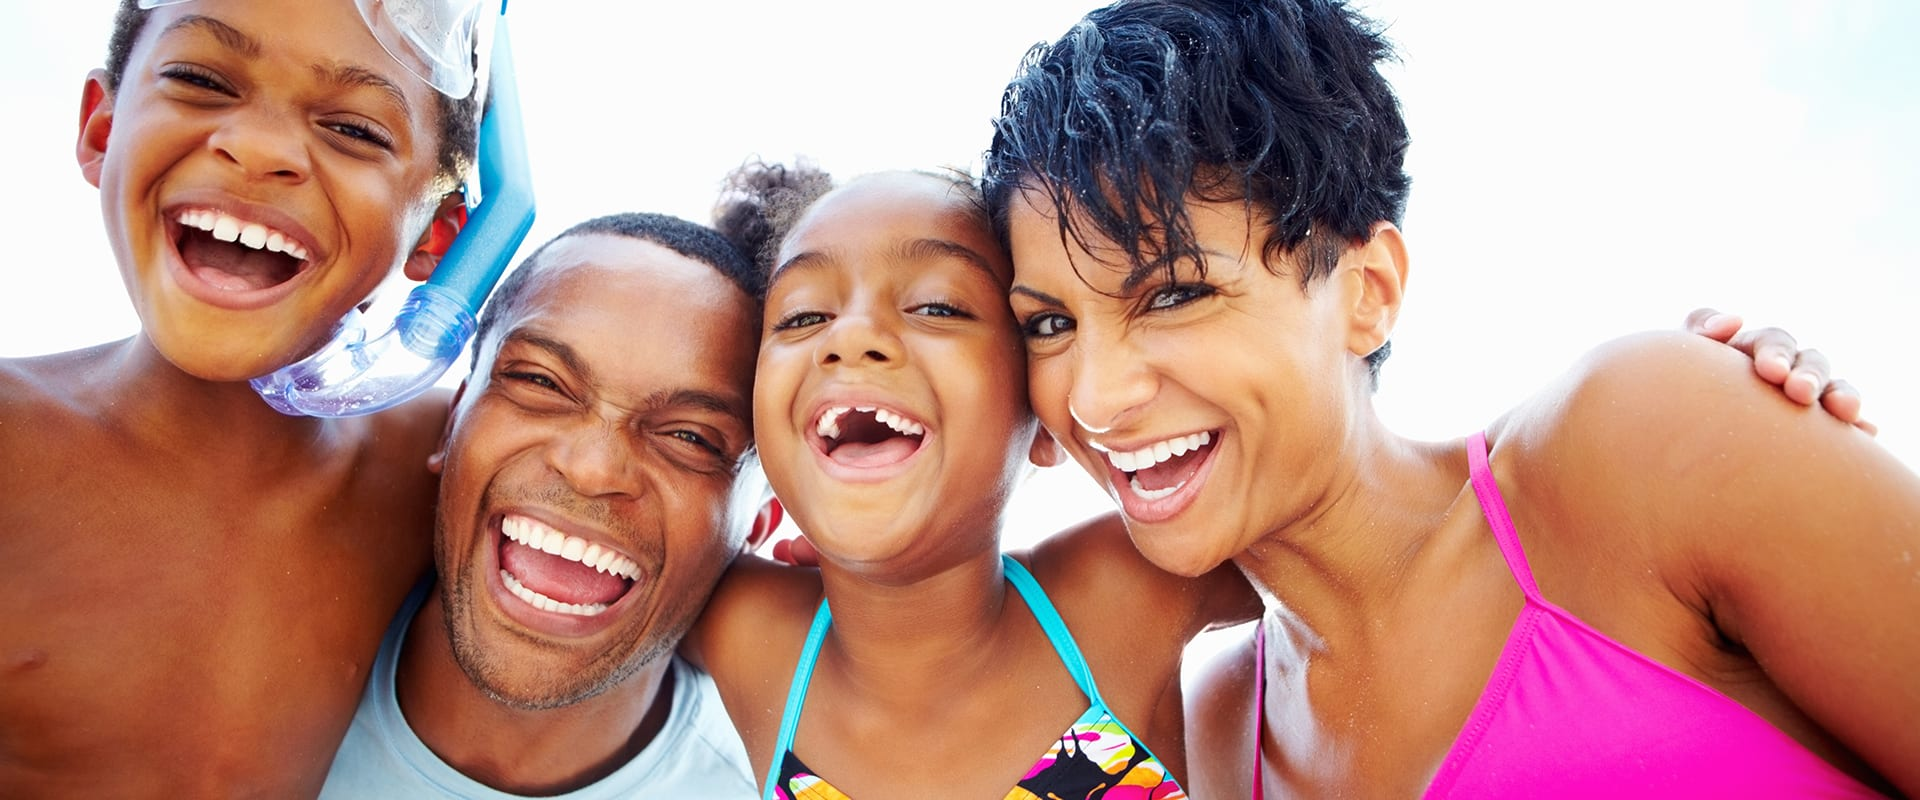 Family laughing while wearing swimsuits